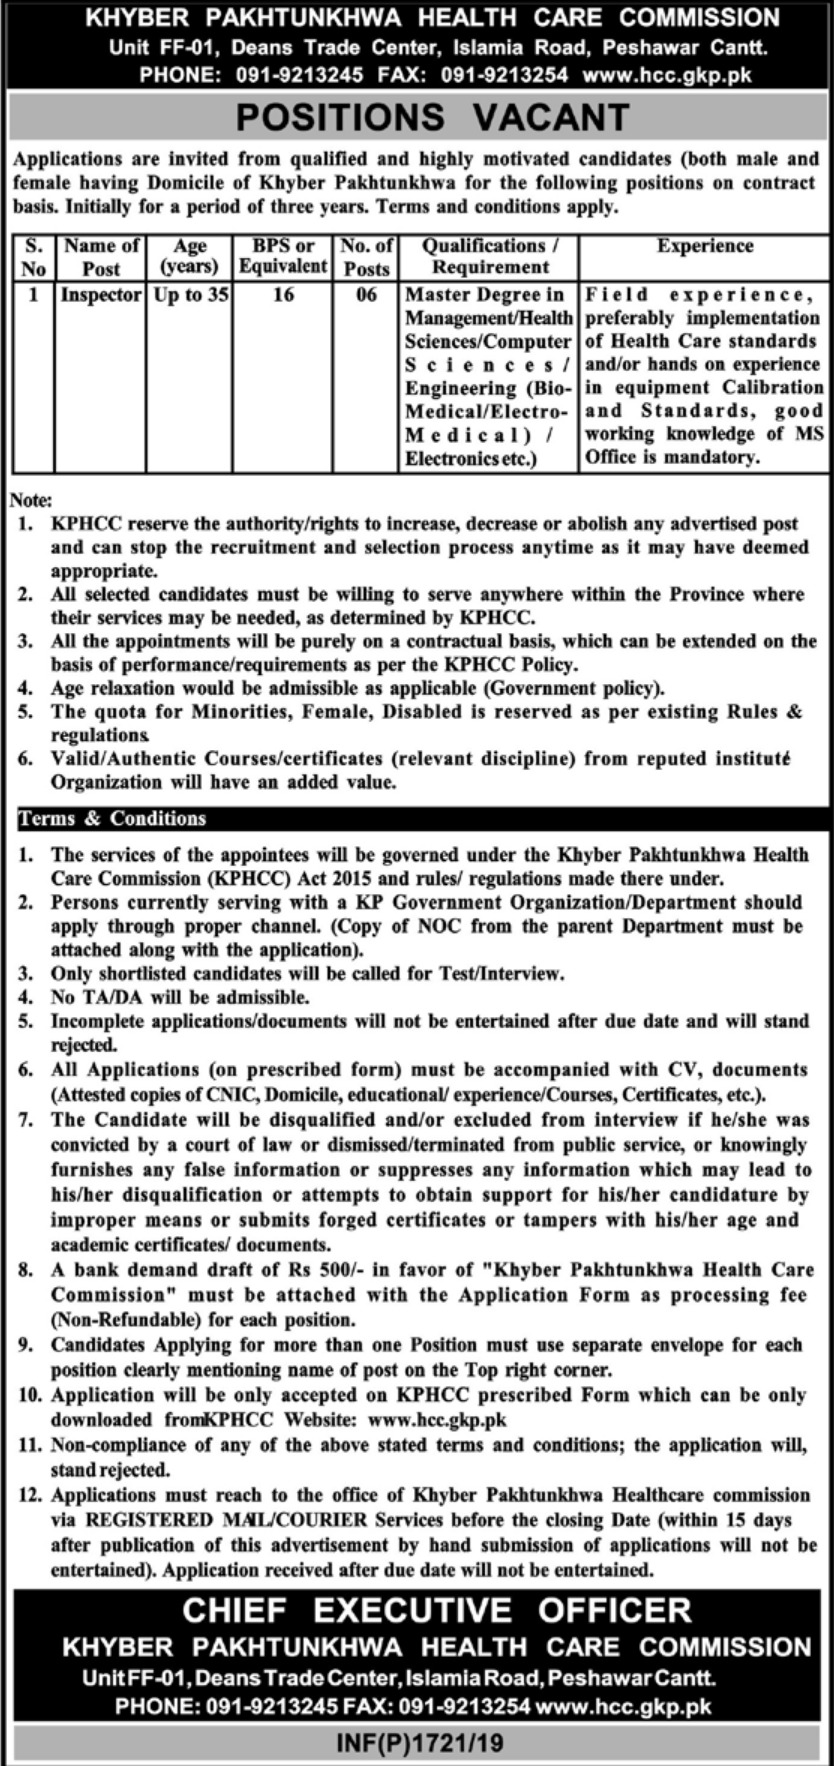 Khyber Pakhtunkhwa Health Care Commission KPHCC Jobs 2019 Inspector